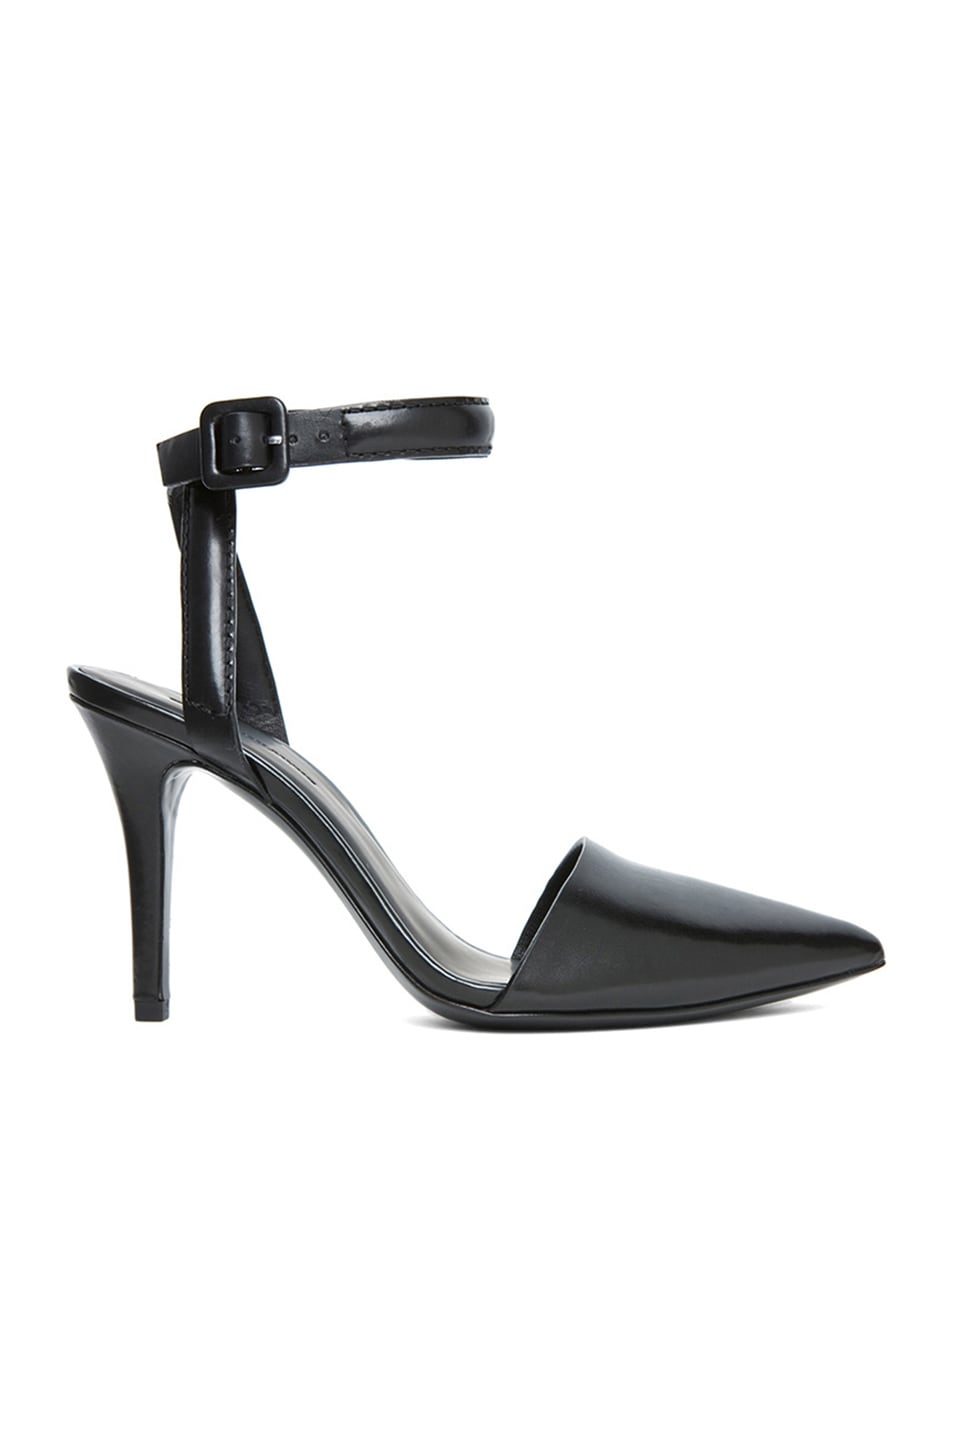 Image 1 of Alexander Wang Lovisa Leather Pumps in Black